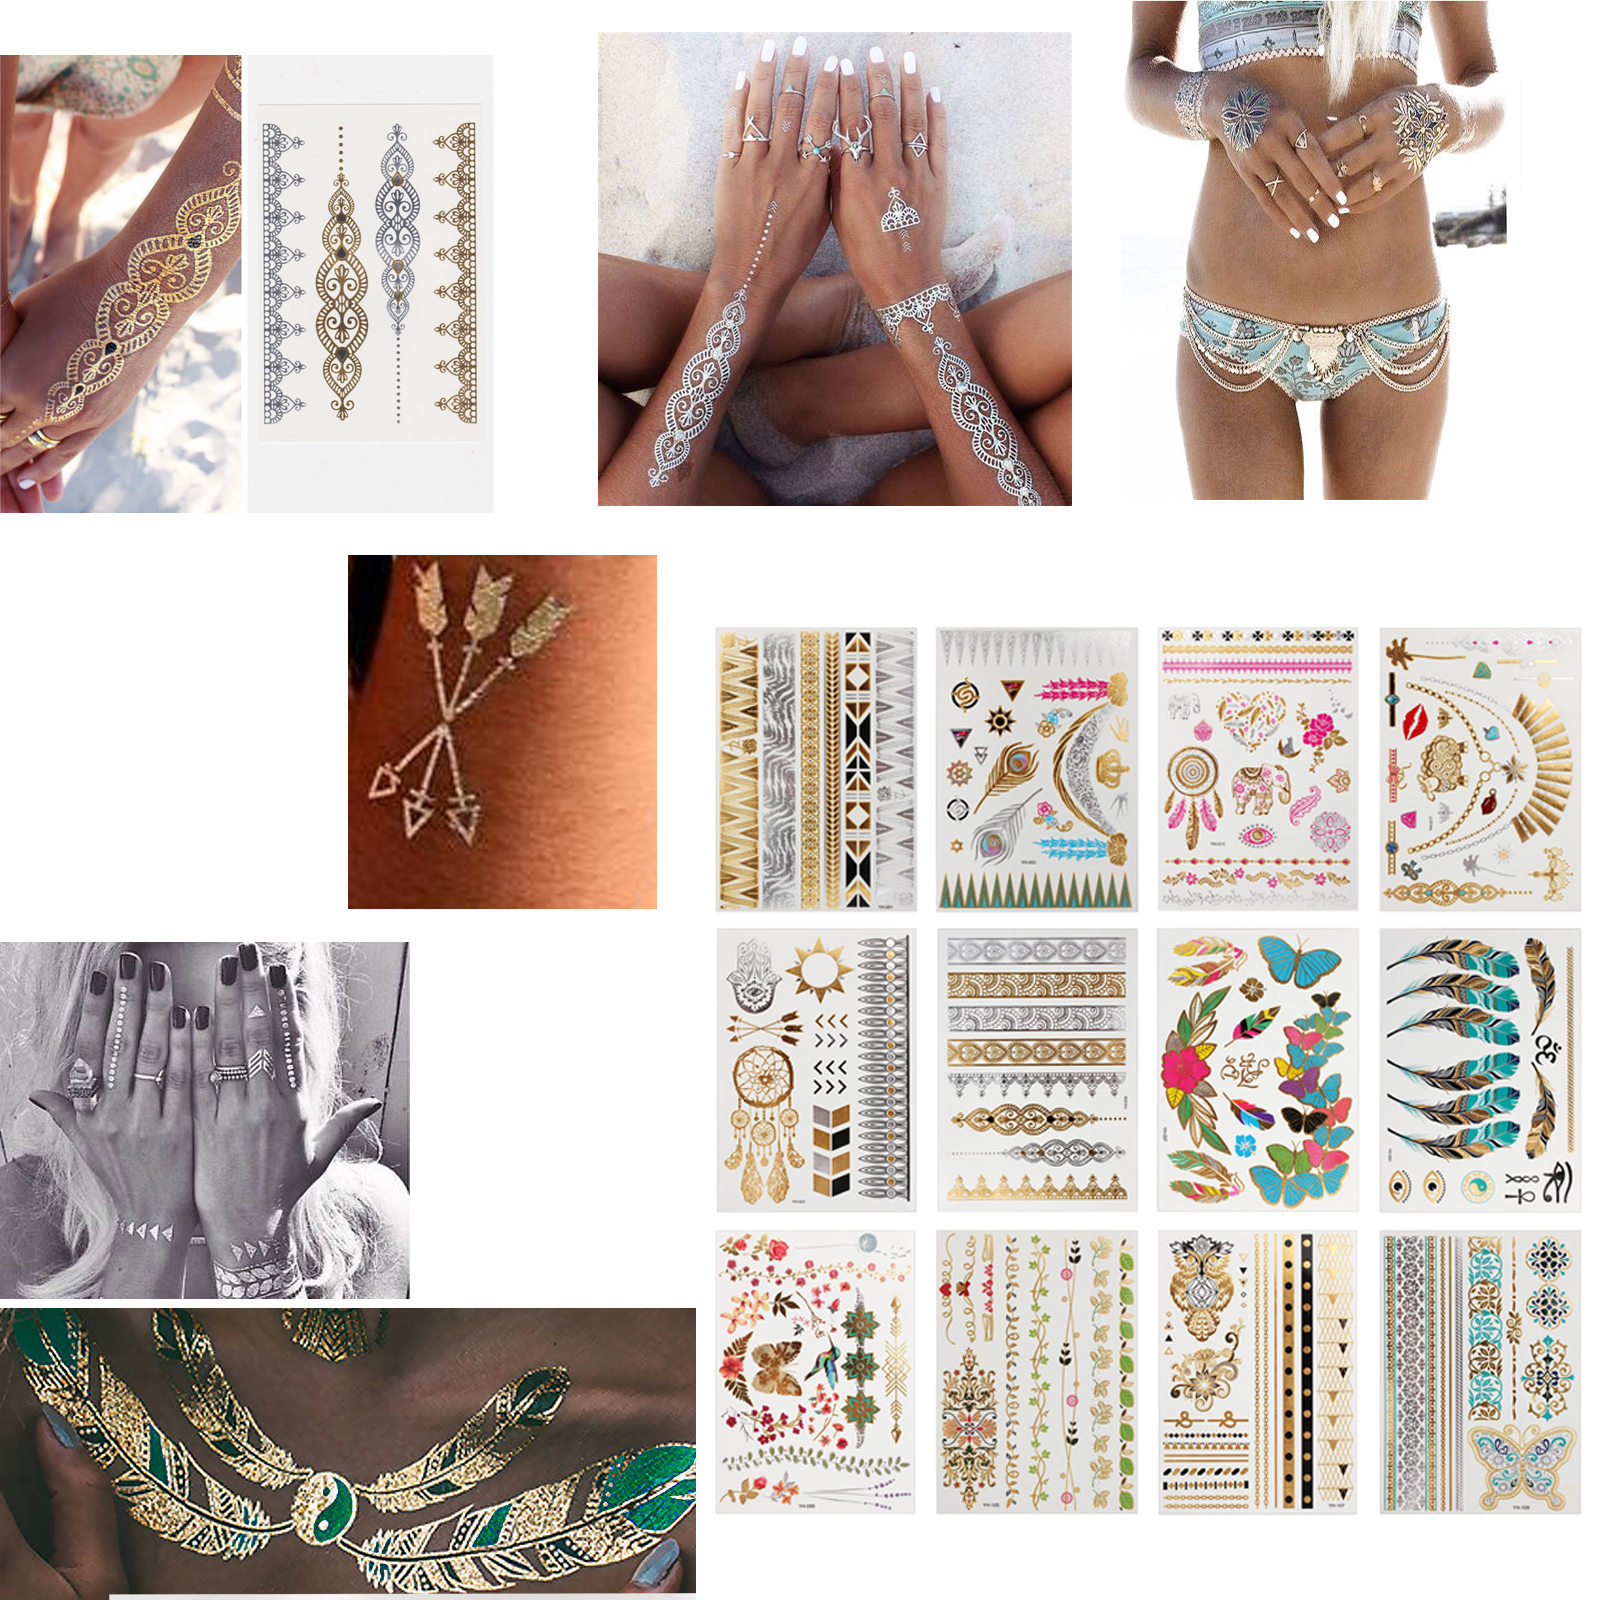 Esynic 12 Sheets Temporary Metallic Flash Tattoos Armbands Necklace